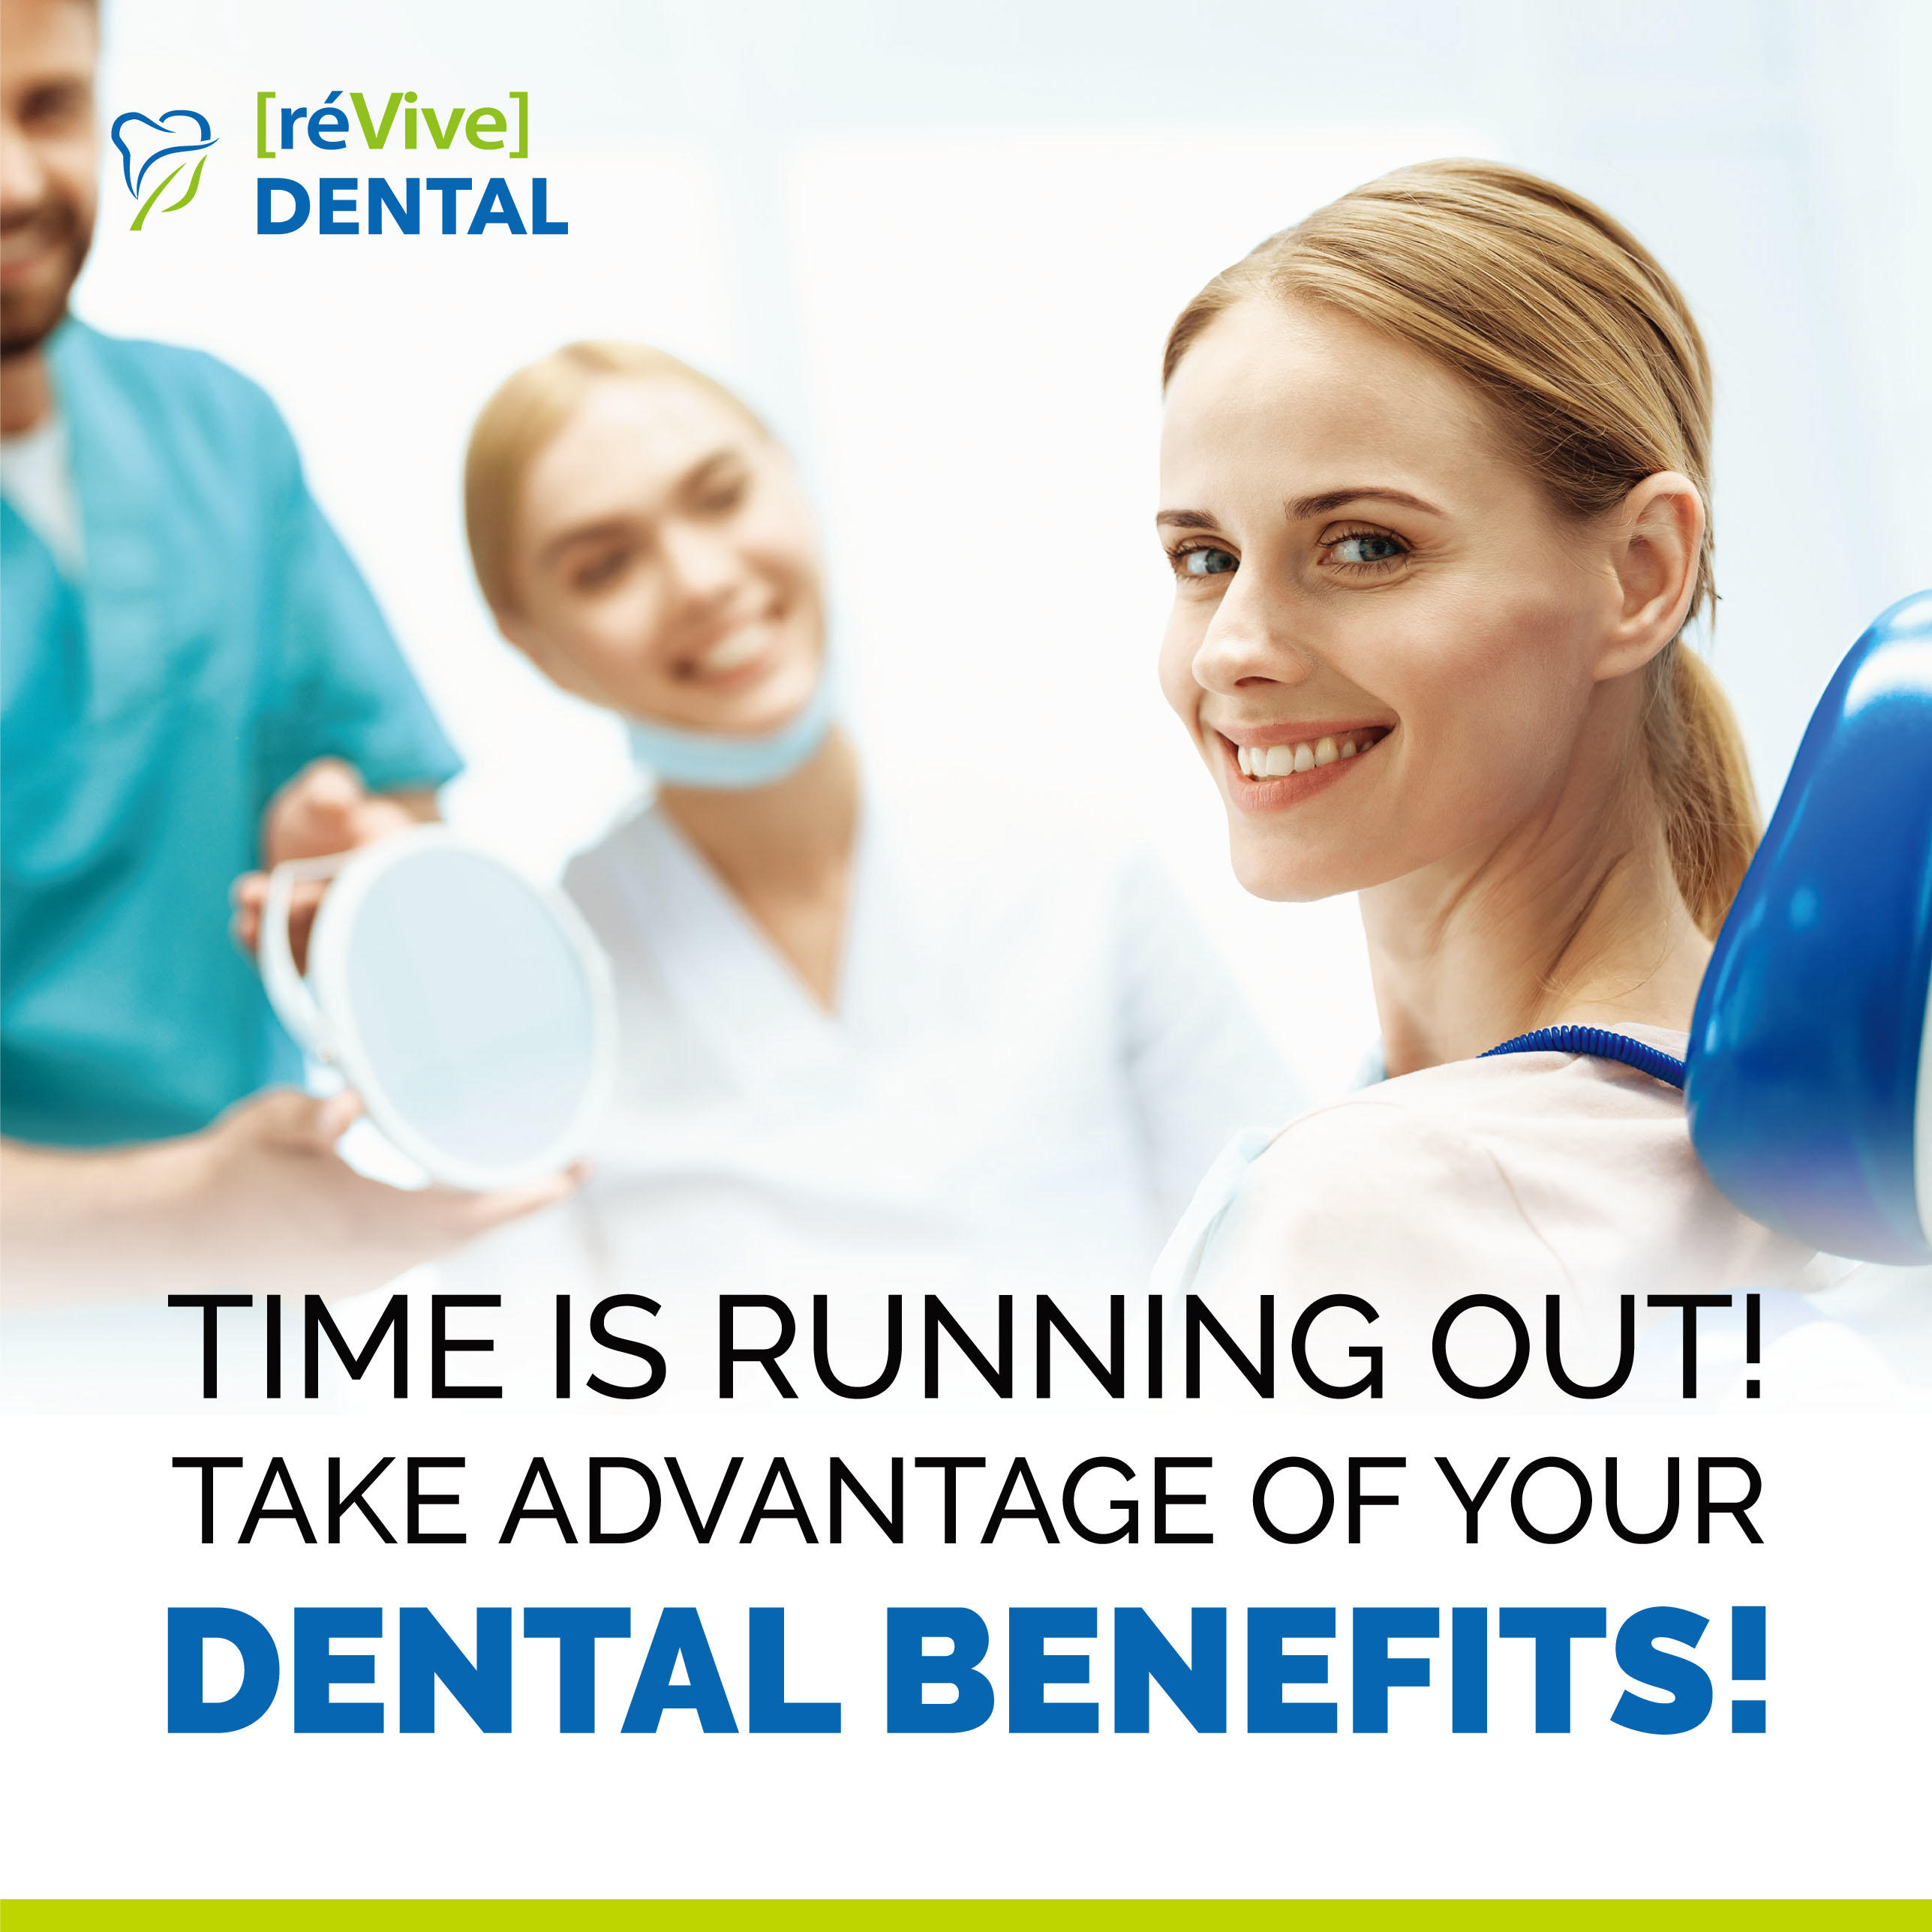 Revive Dental Medicaid Family, Cosmetic Emergency Dentist image 2